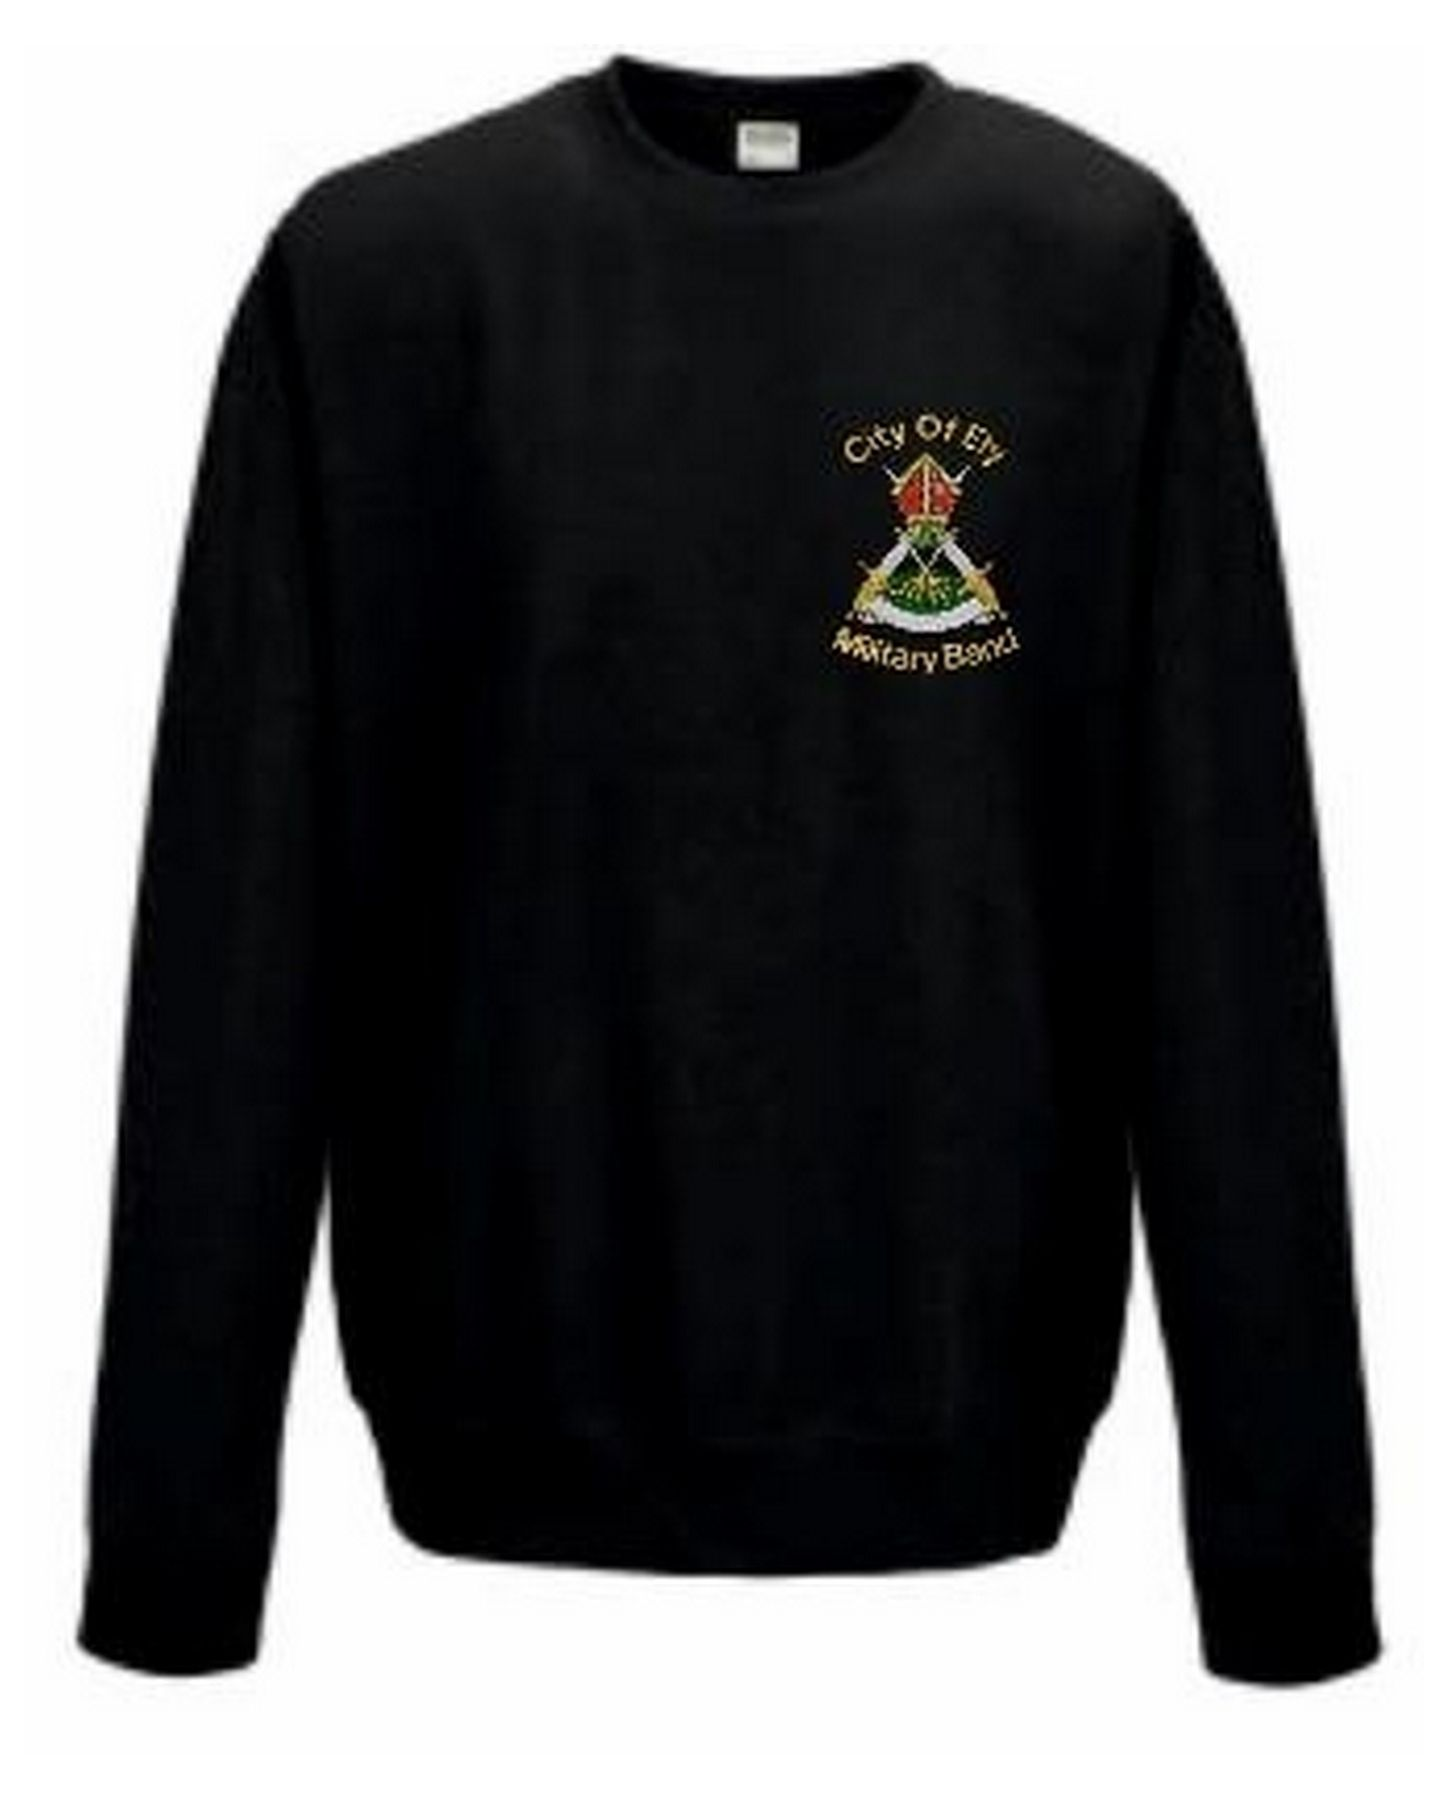 Ely Military Band – Sweater